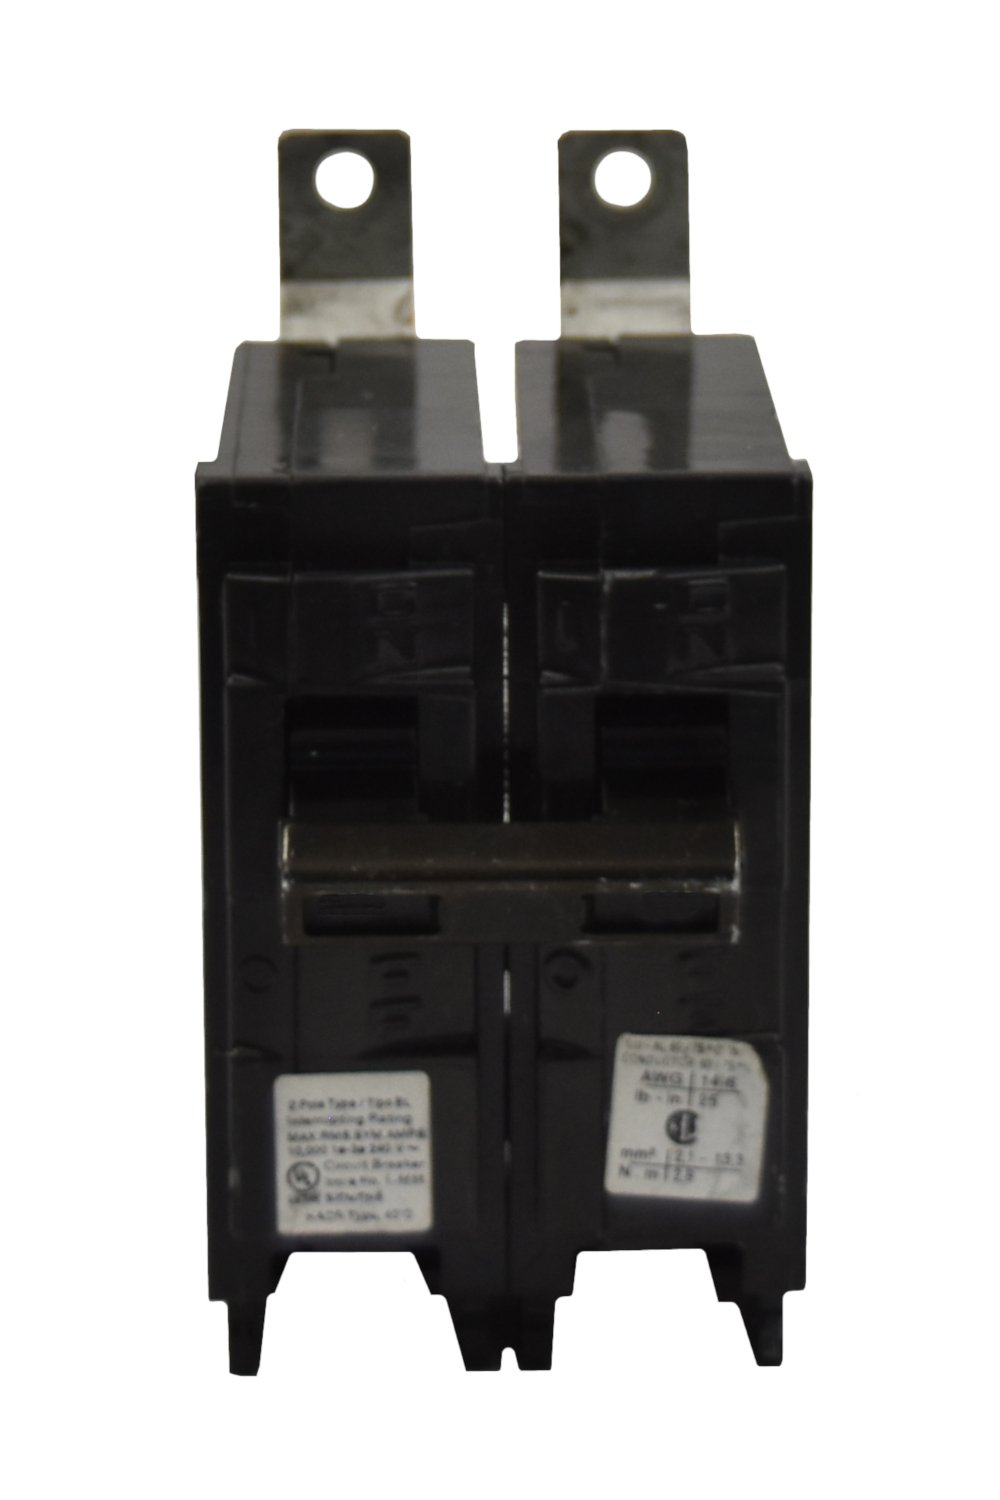 Siemens B215H Circuit Breakers